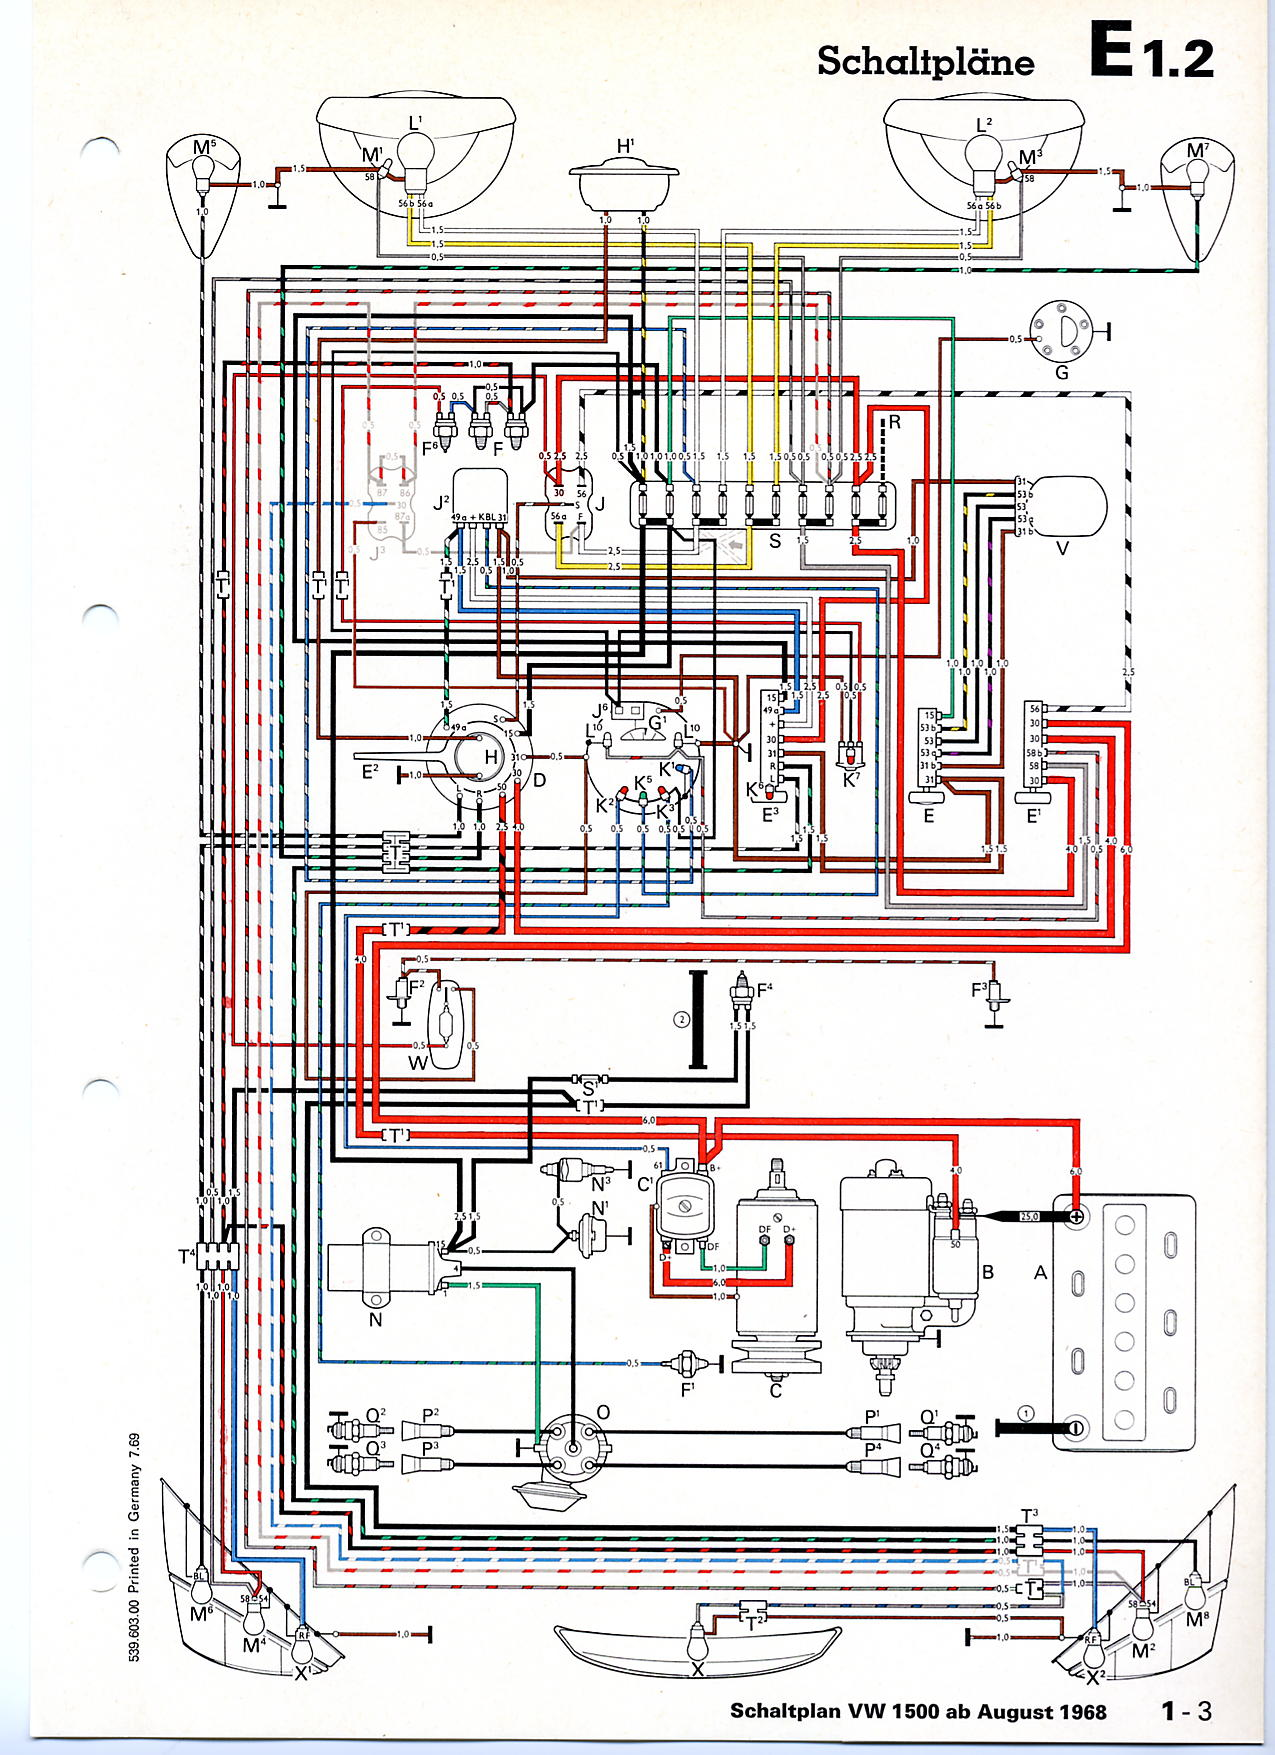 vw beetle fuse diagram image wiring diagram 1969 vw bug wiring diagram images on 1969 vw beetle fuse diagram